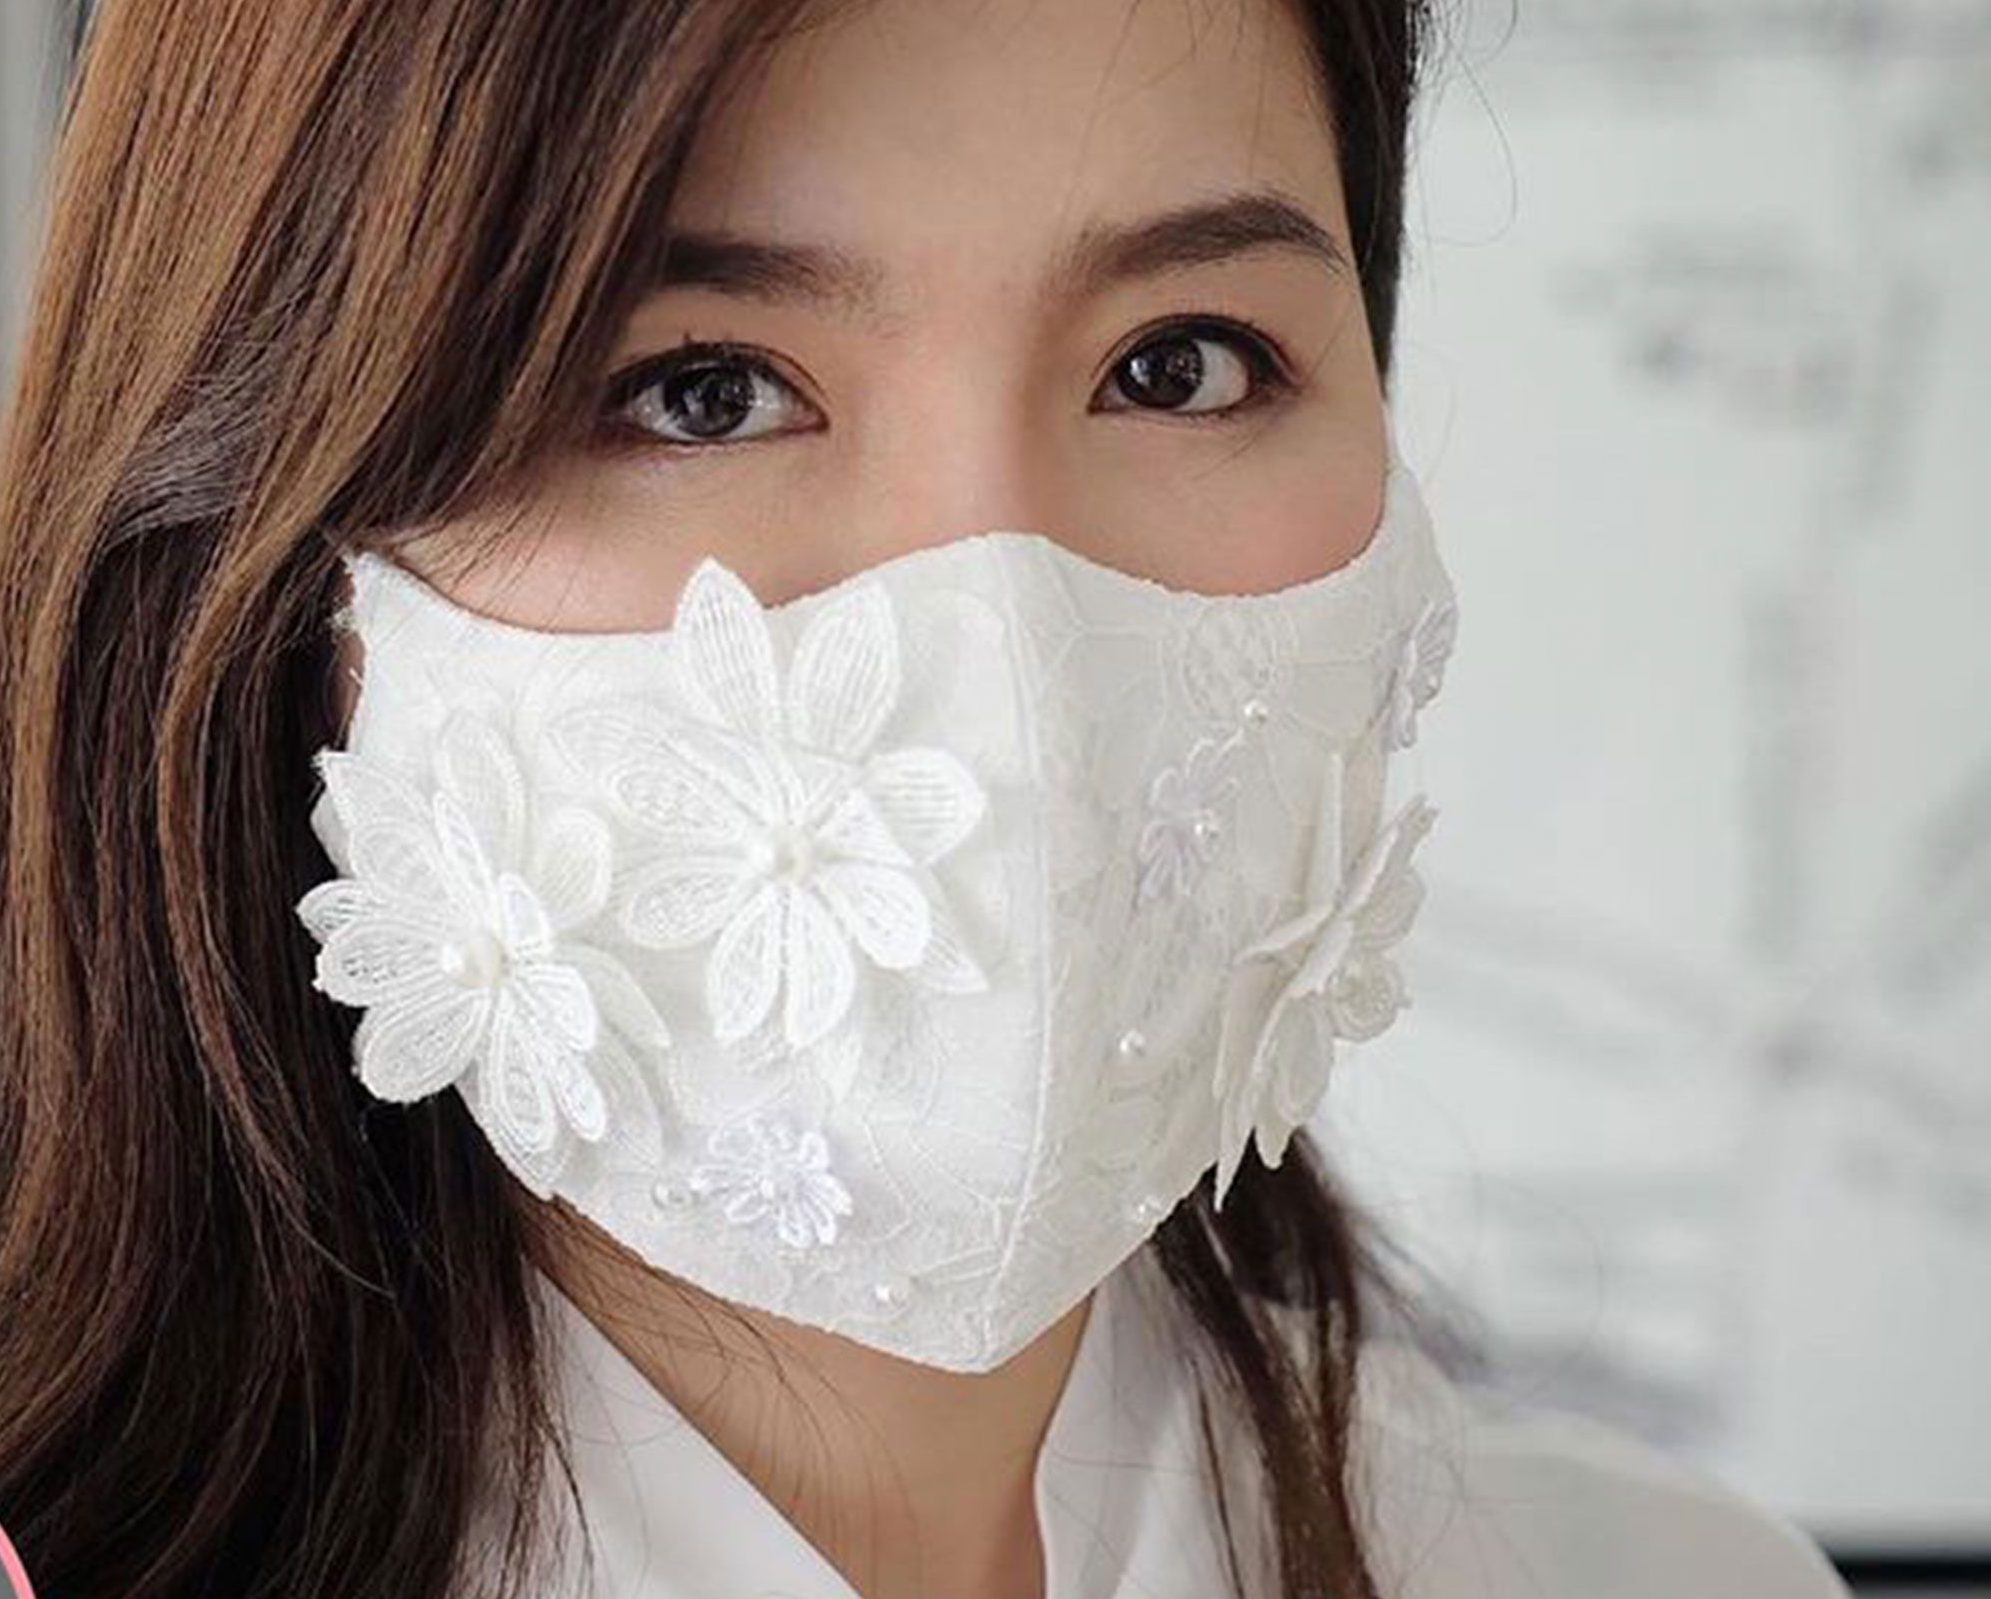 6 Ways to Make PPE More Fashionable